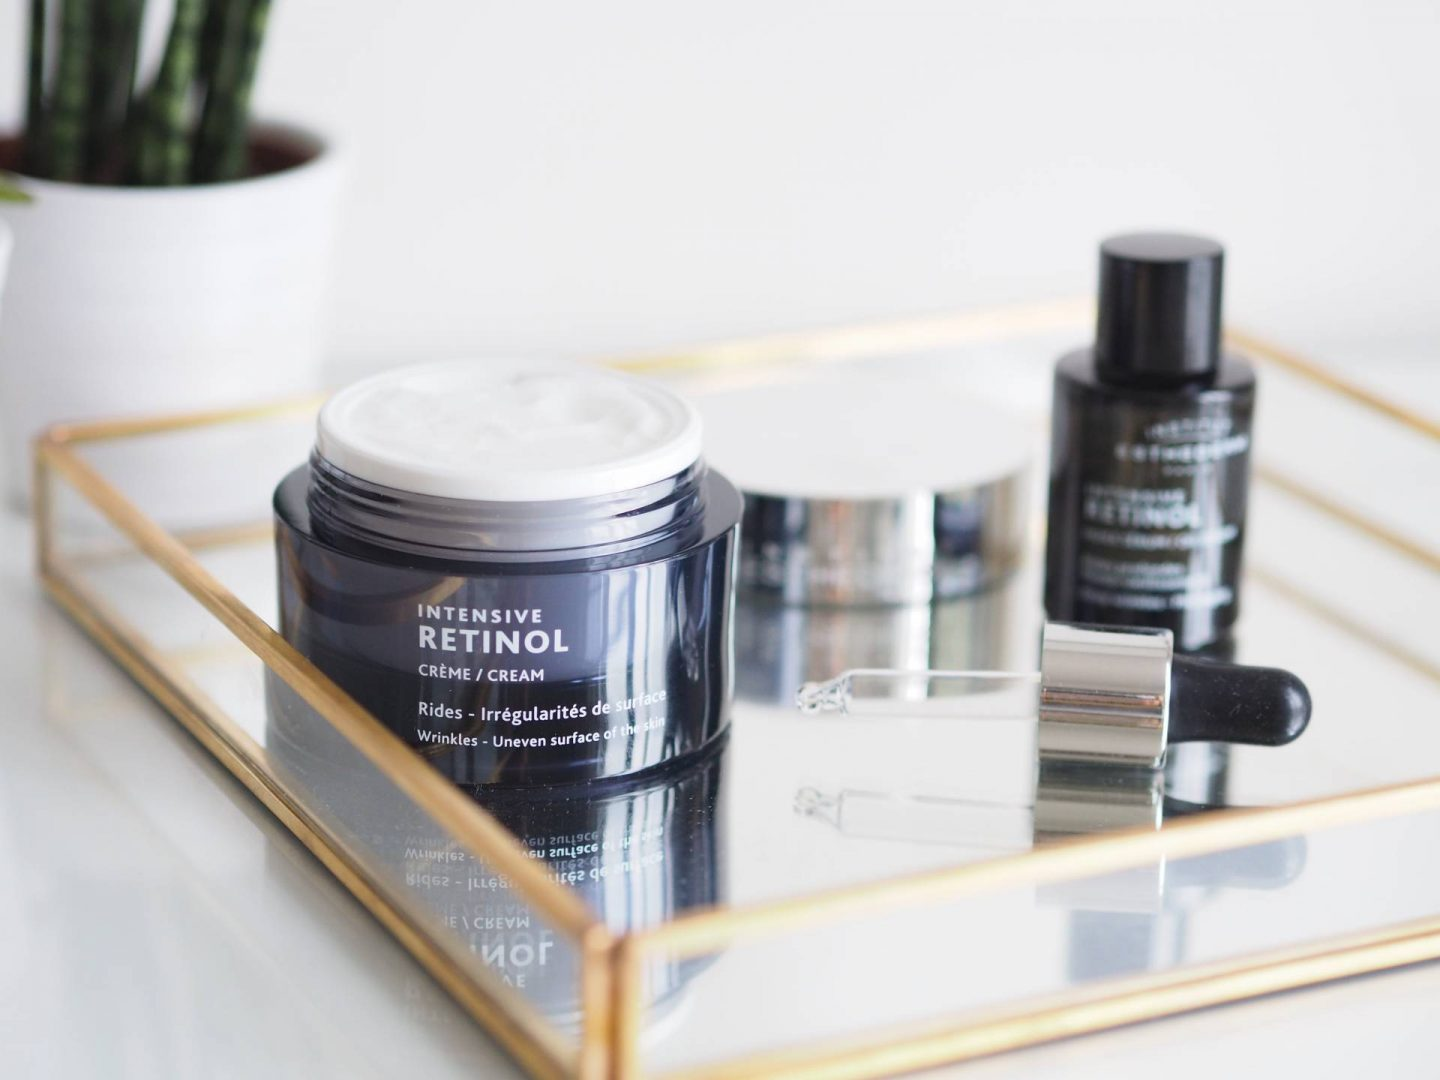 WHAT IS RETINOL AND DO YOU NEED IT?